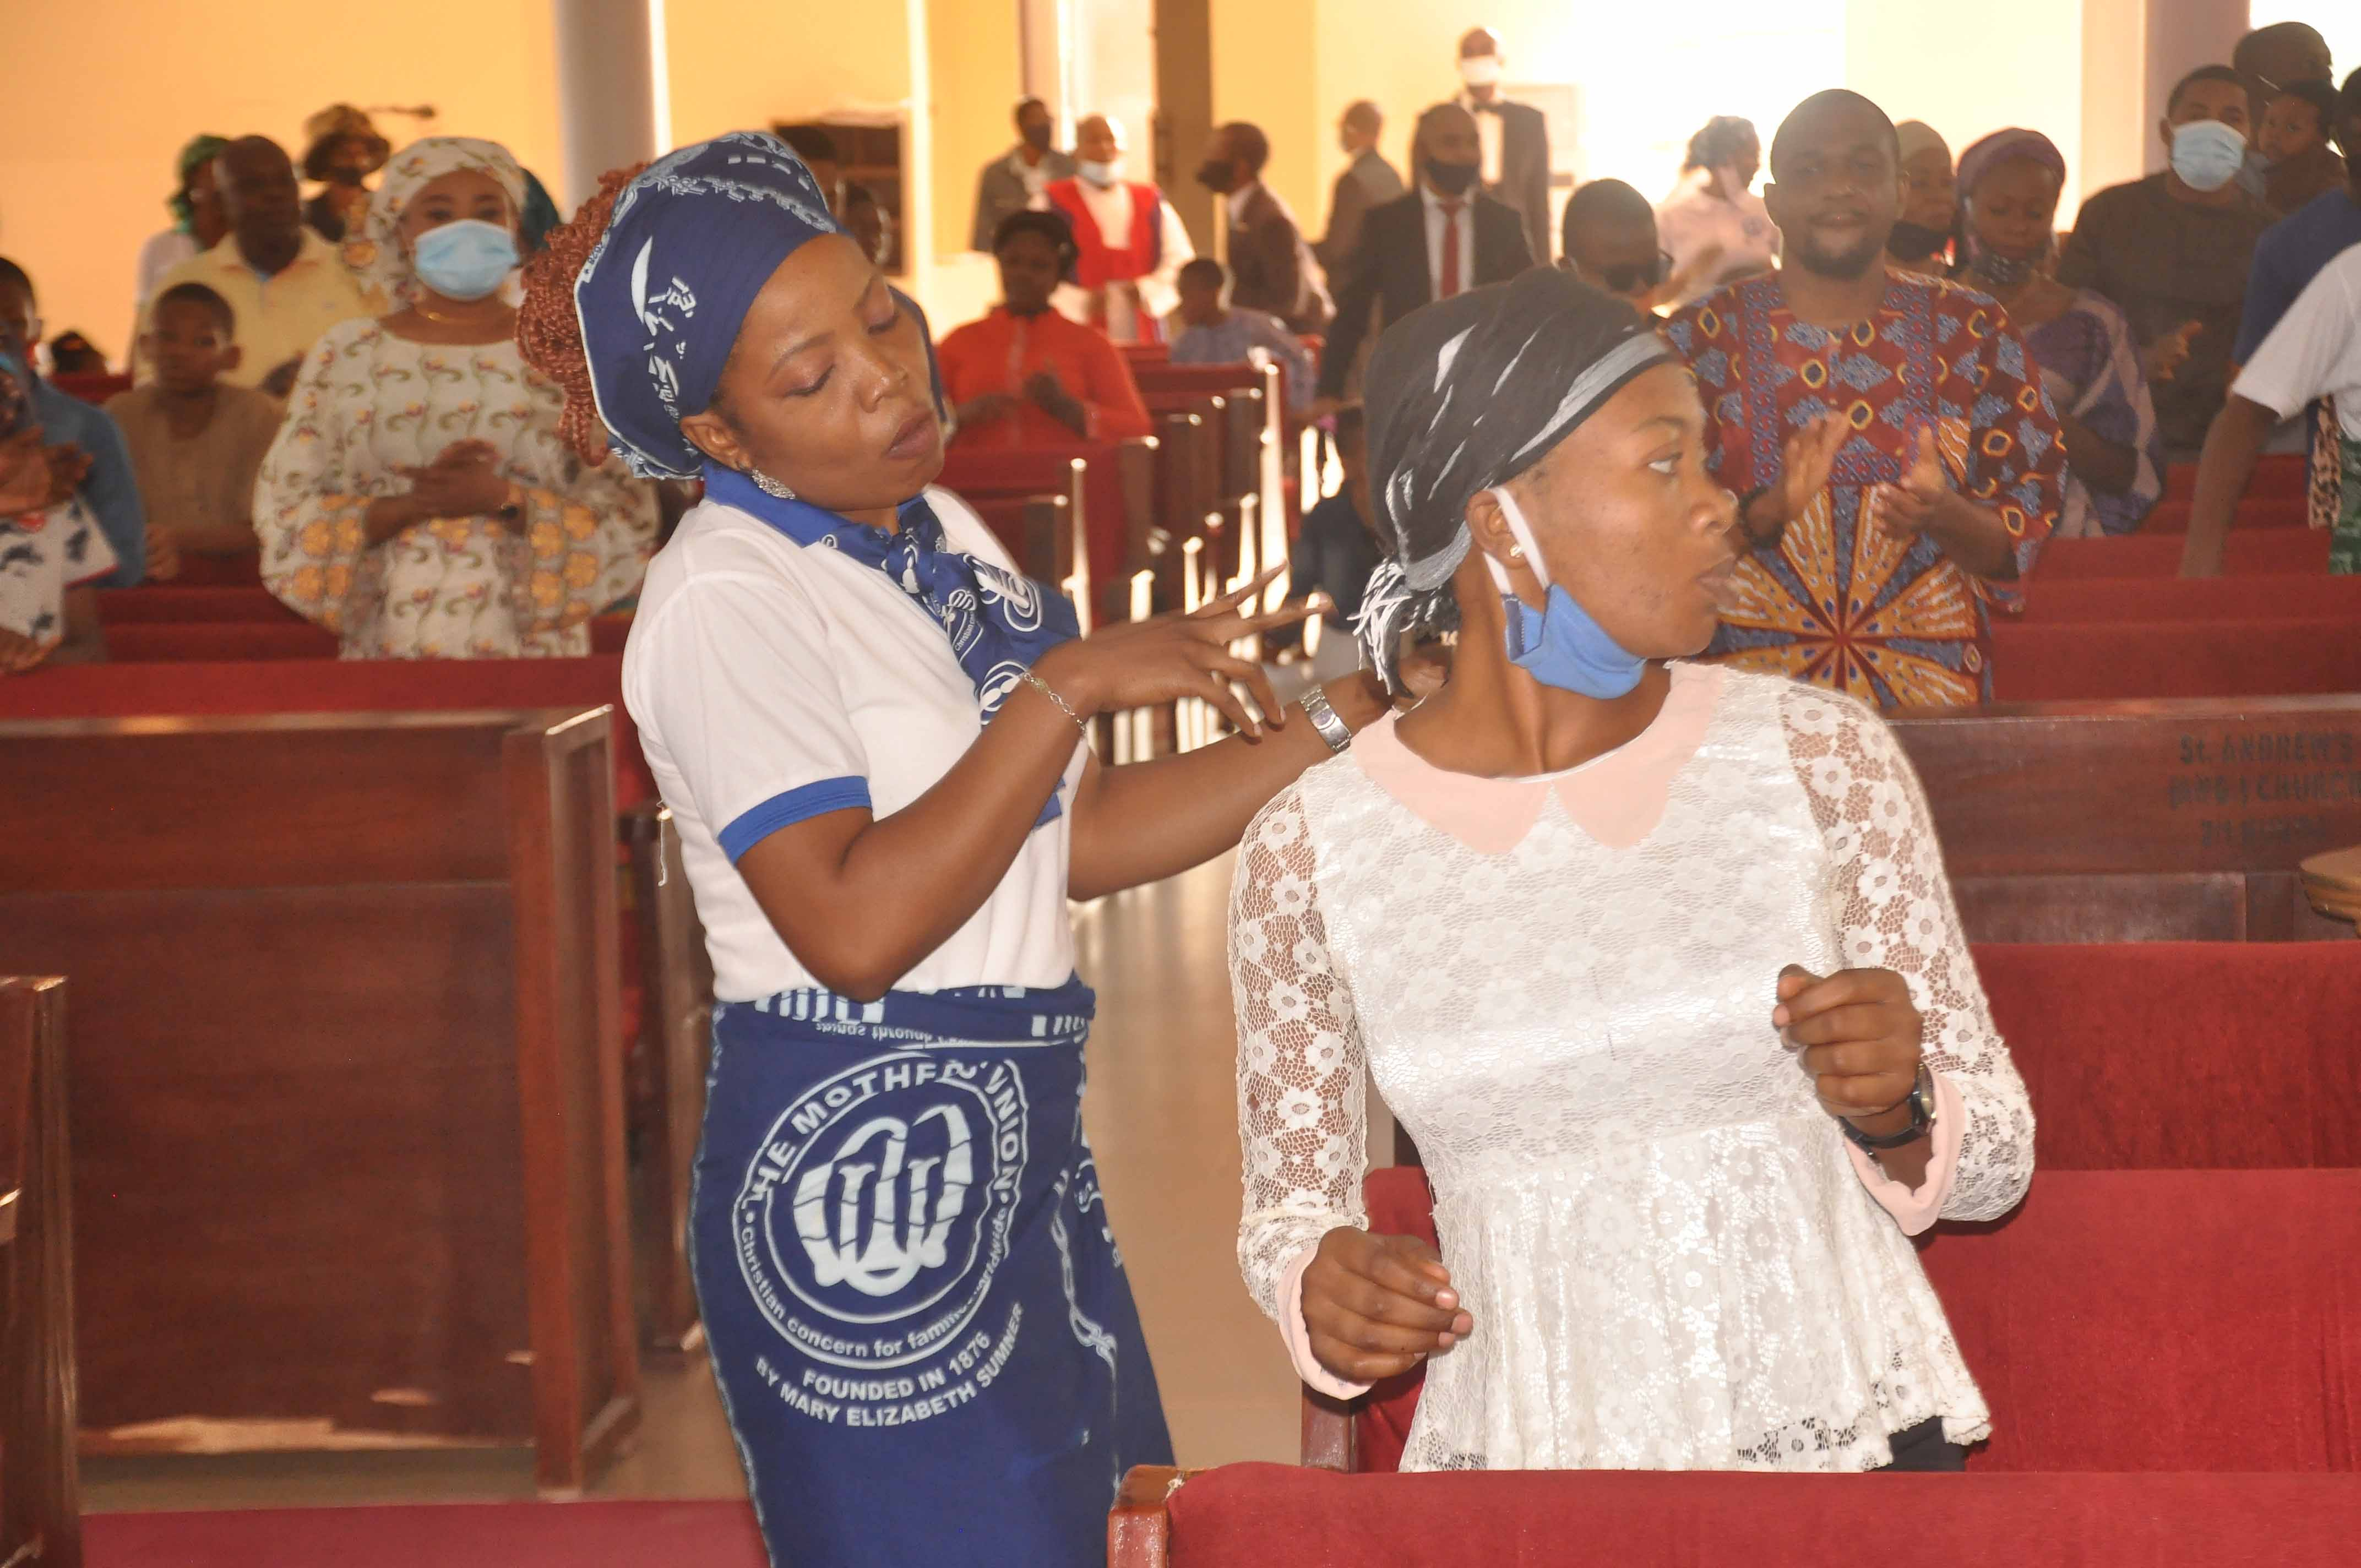 Dancing into 2020... Our Year of Divine Advancement